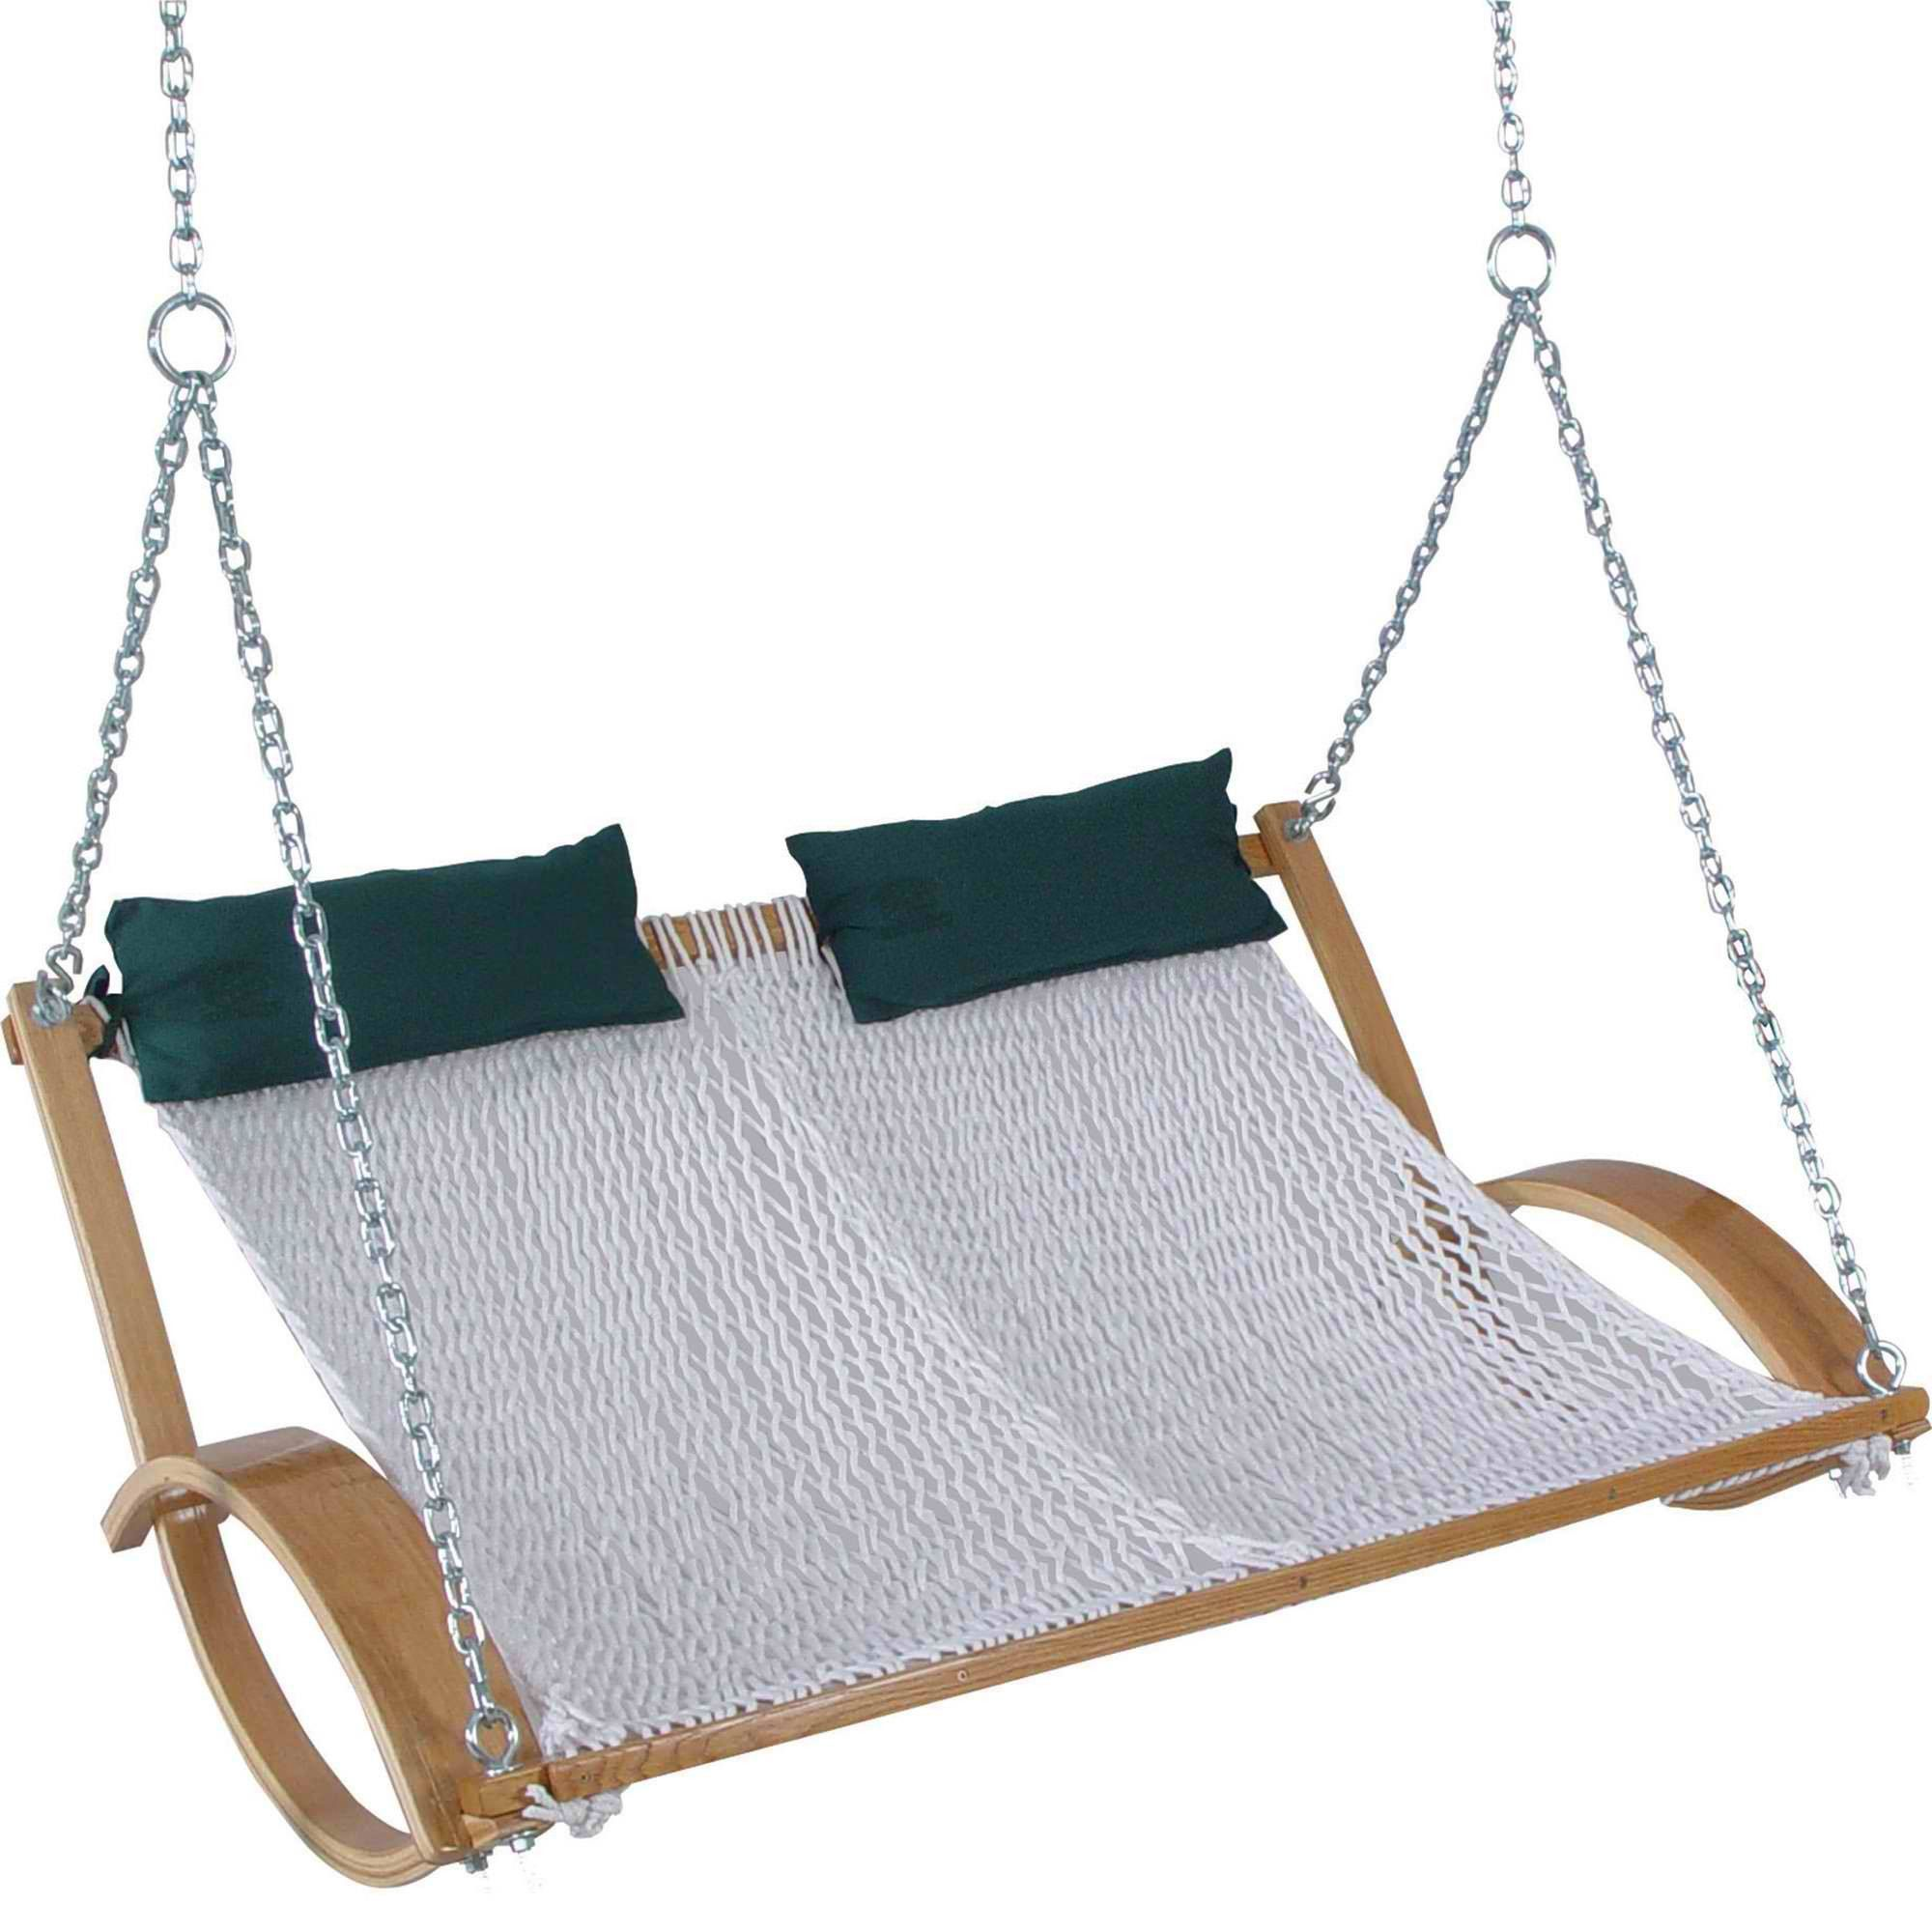 hammock with chair and adults seat for sale outdoor double patio decorating garden stand swings canopy swing your wooden